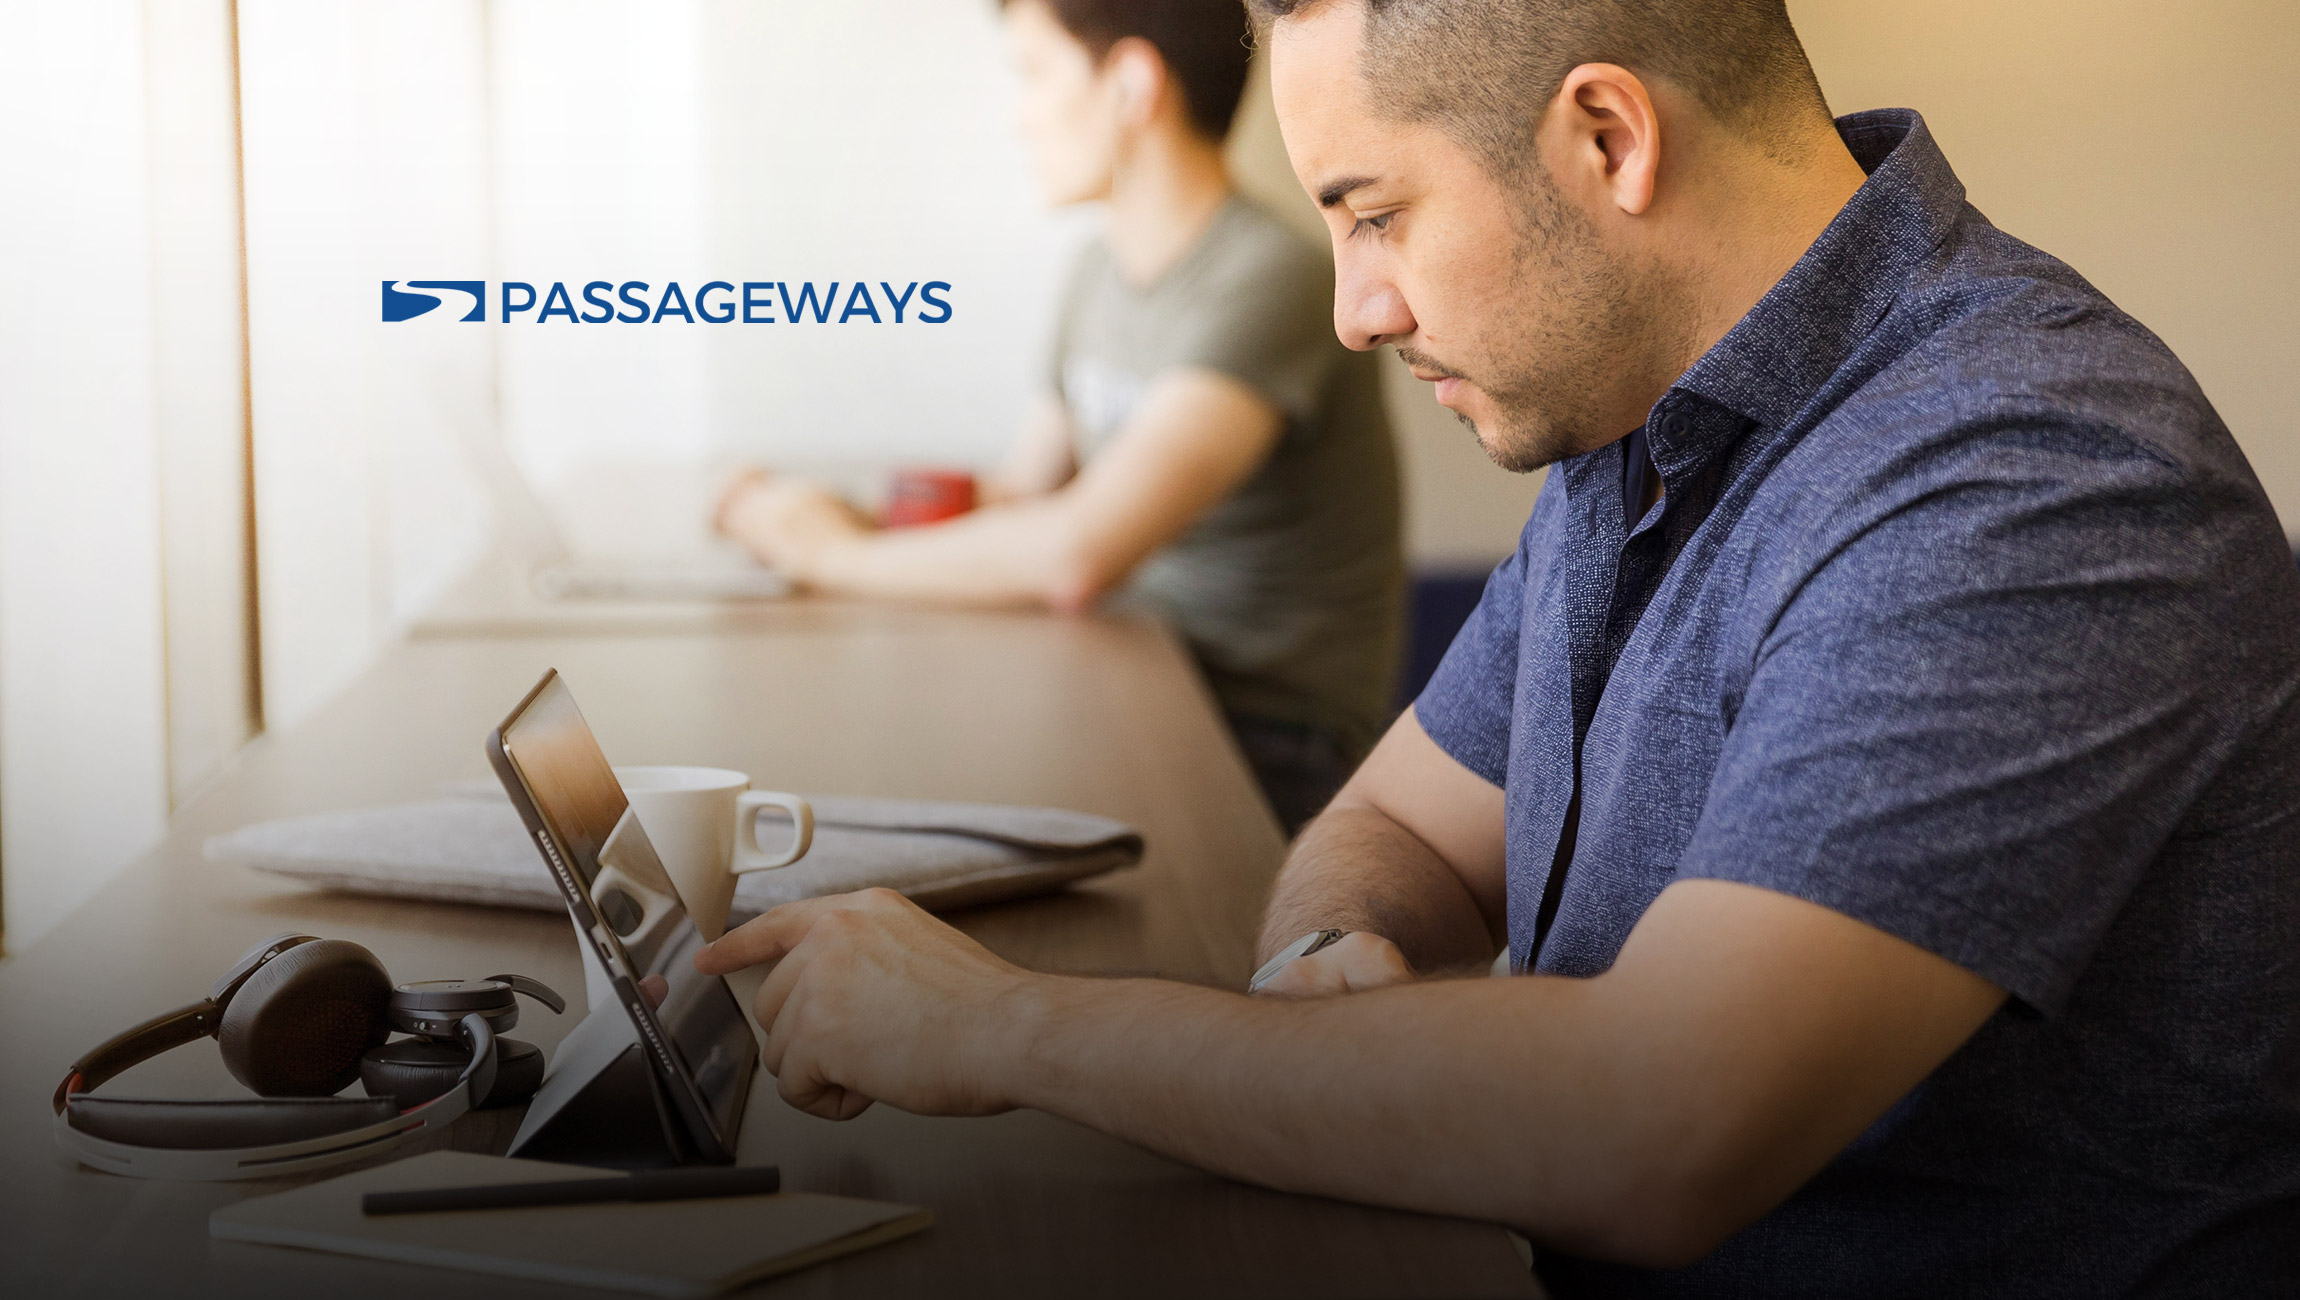 Passageways Honored To Win Seven Stevie Awards At 2020 American Business Awards